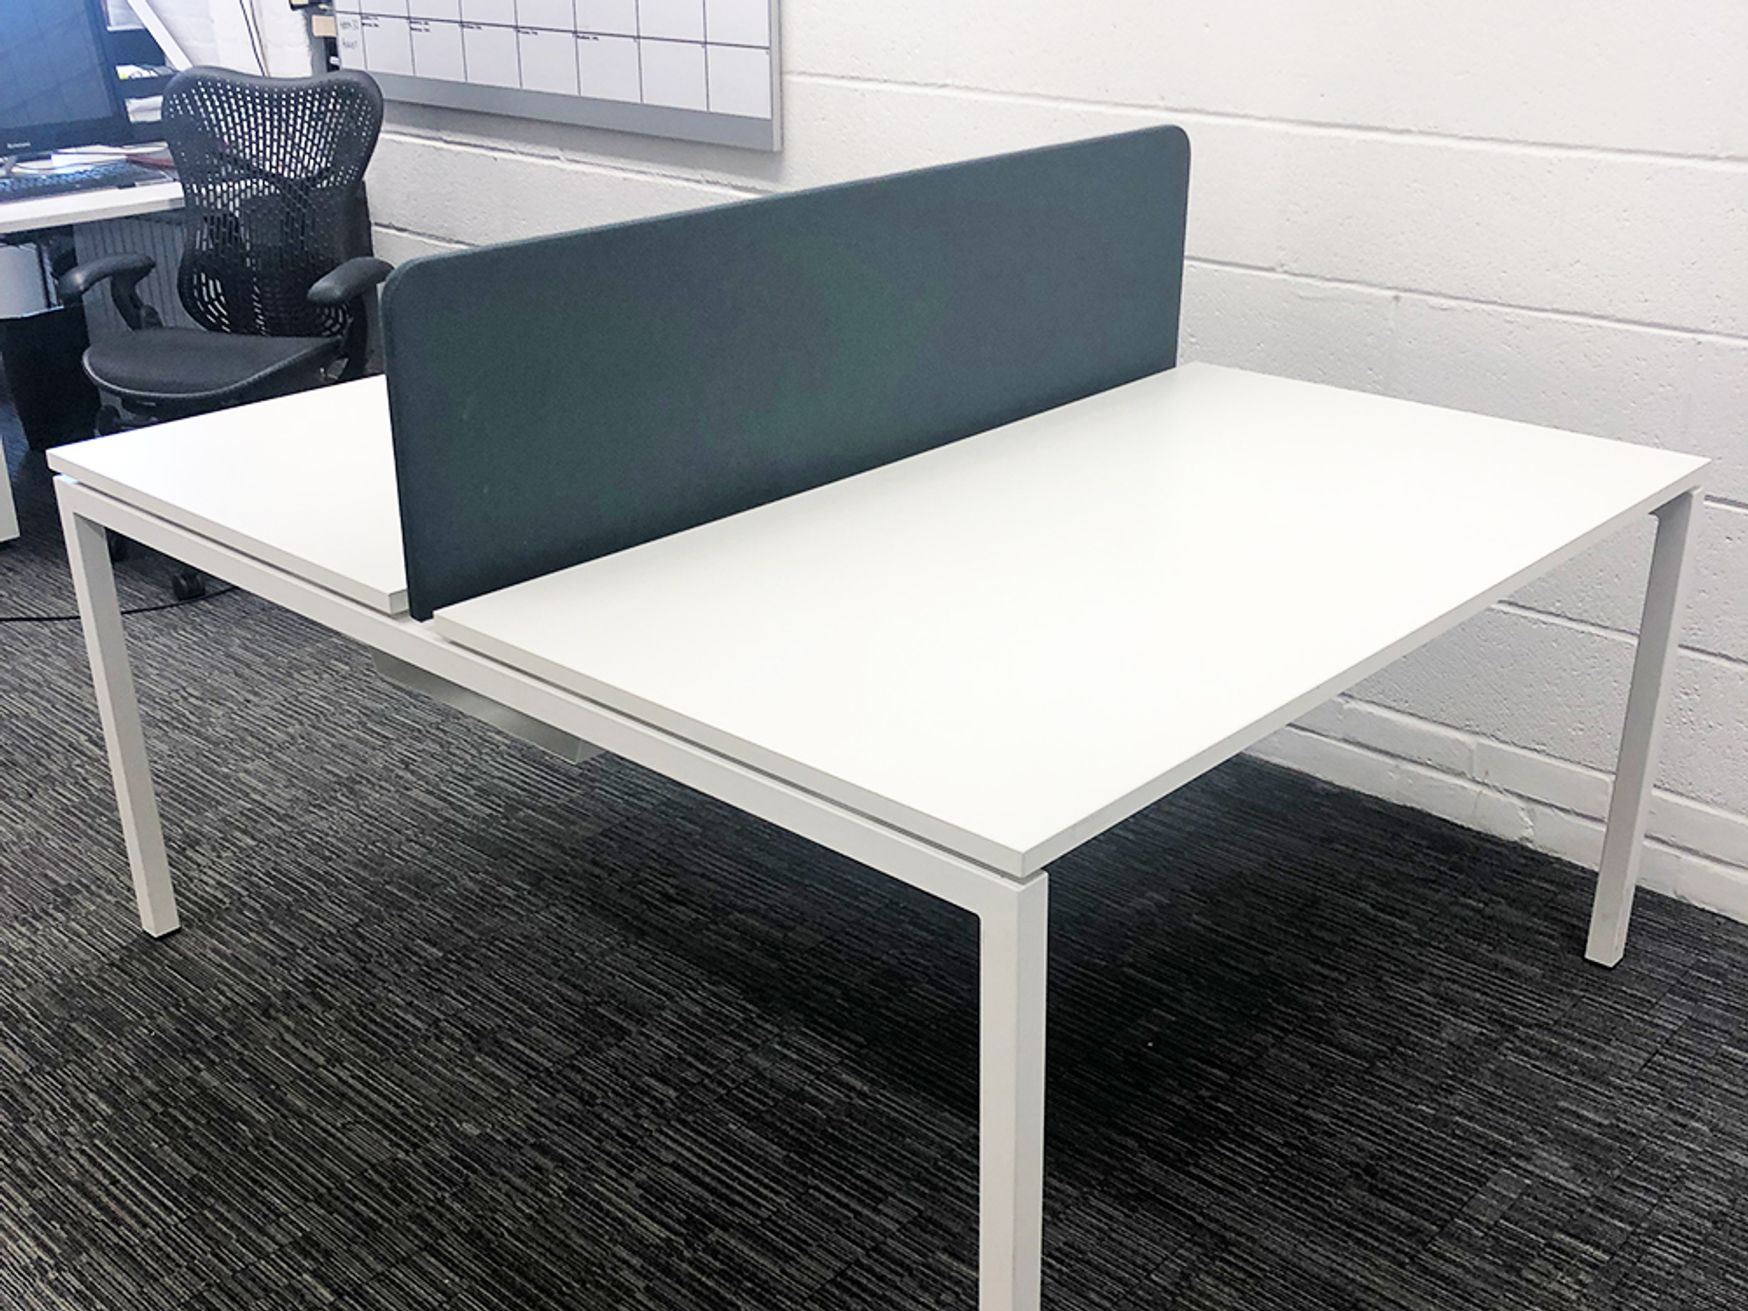 Used 1400mm White Bench Desks - Various Configurations